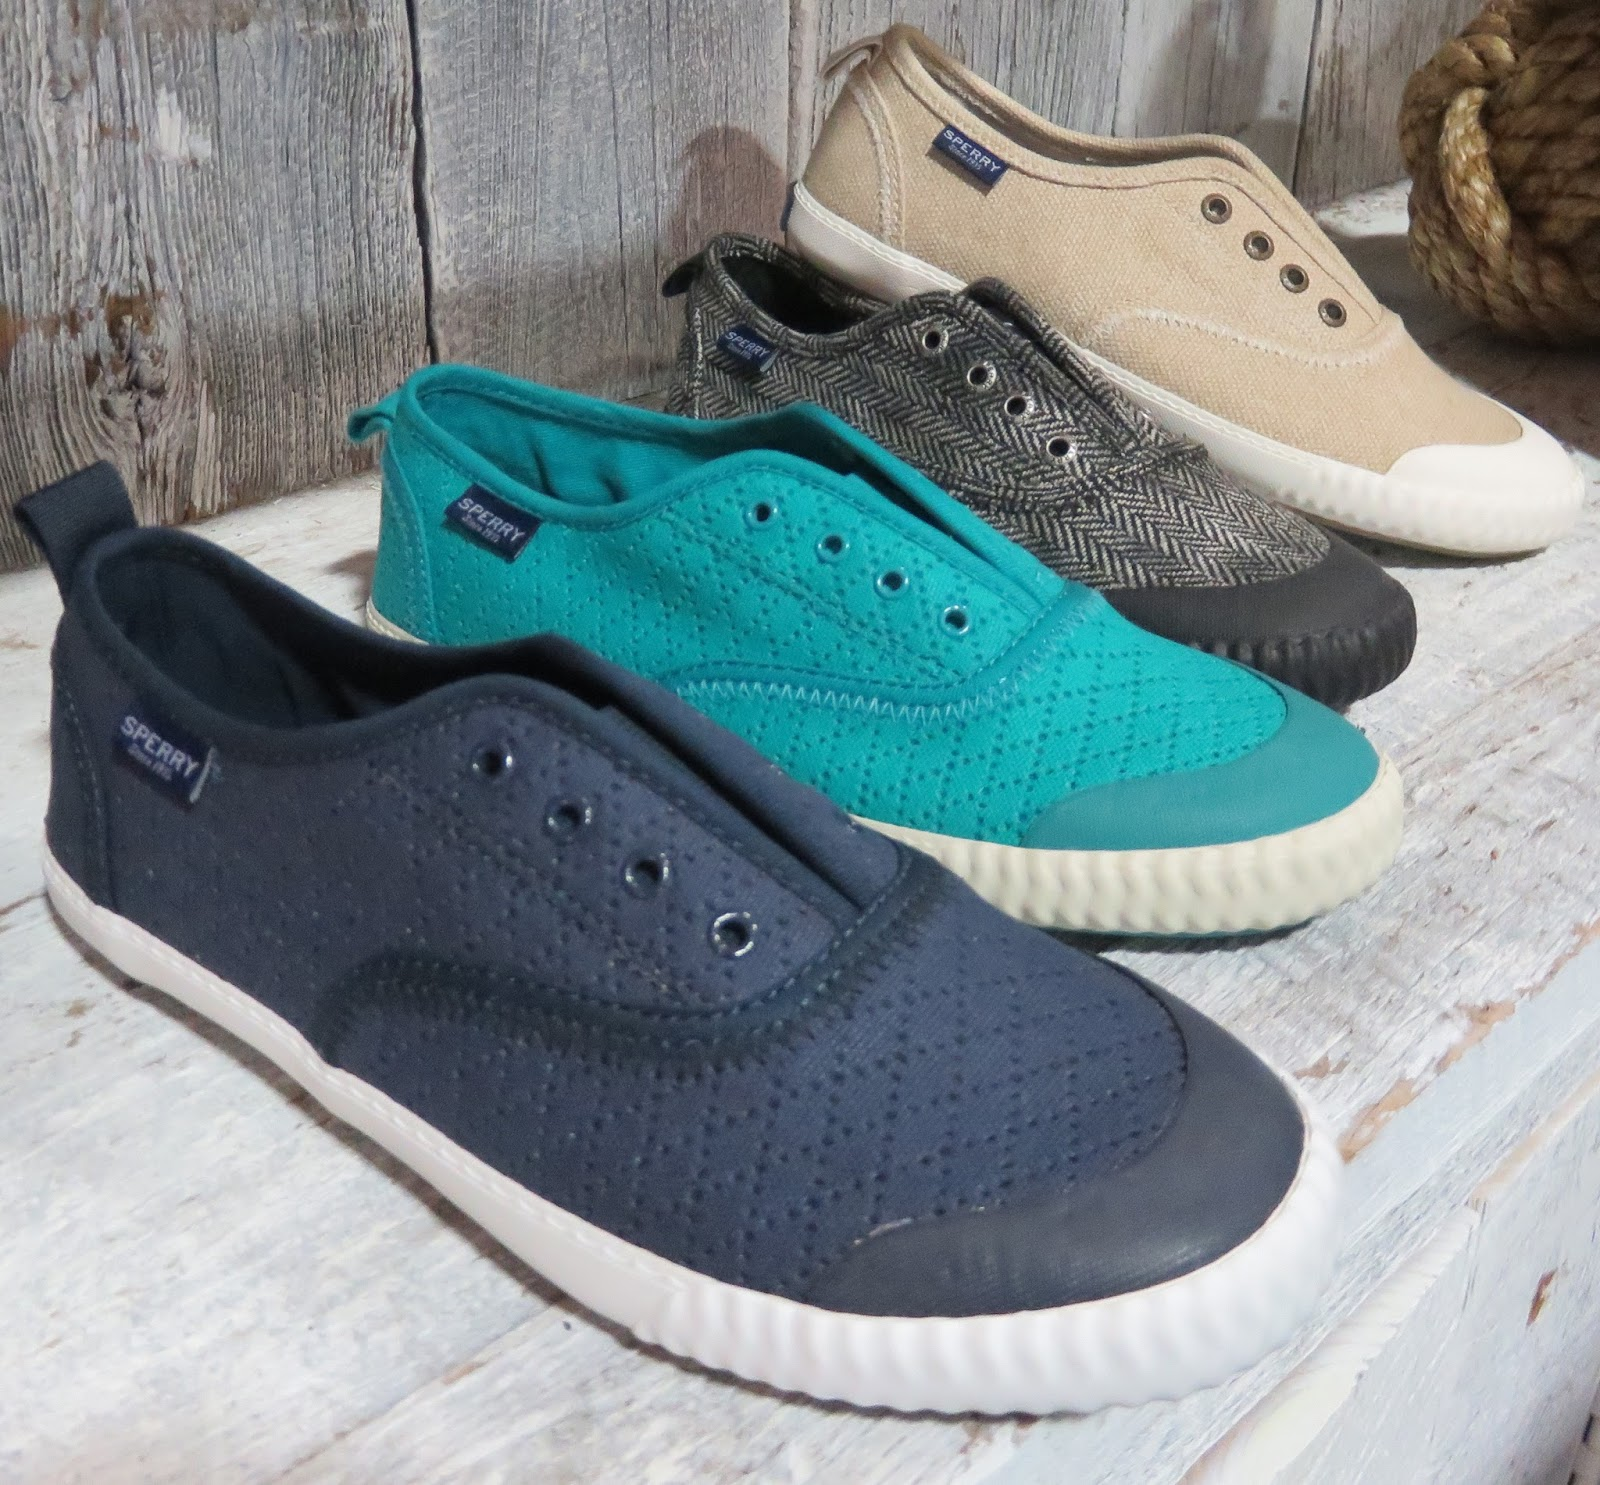 31618a5e84 Sayel Clew perforated sneaker style perforated breathable uppers-back 2 are  in waxy textured canvas - 60 W-cute slip-ons that walk well w  rubber  outsole-ez ...